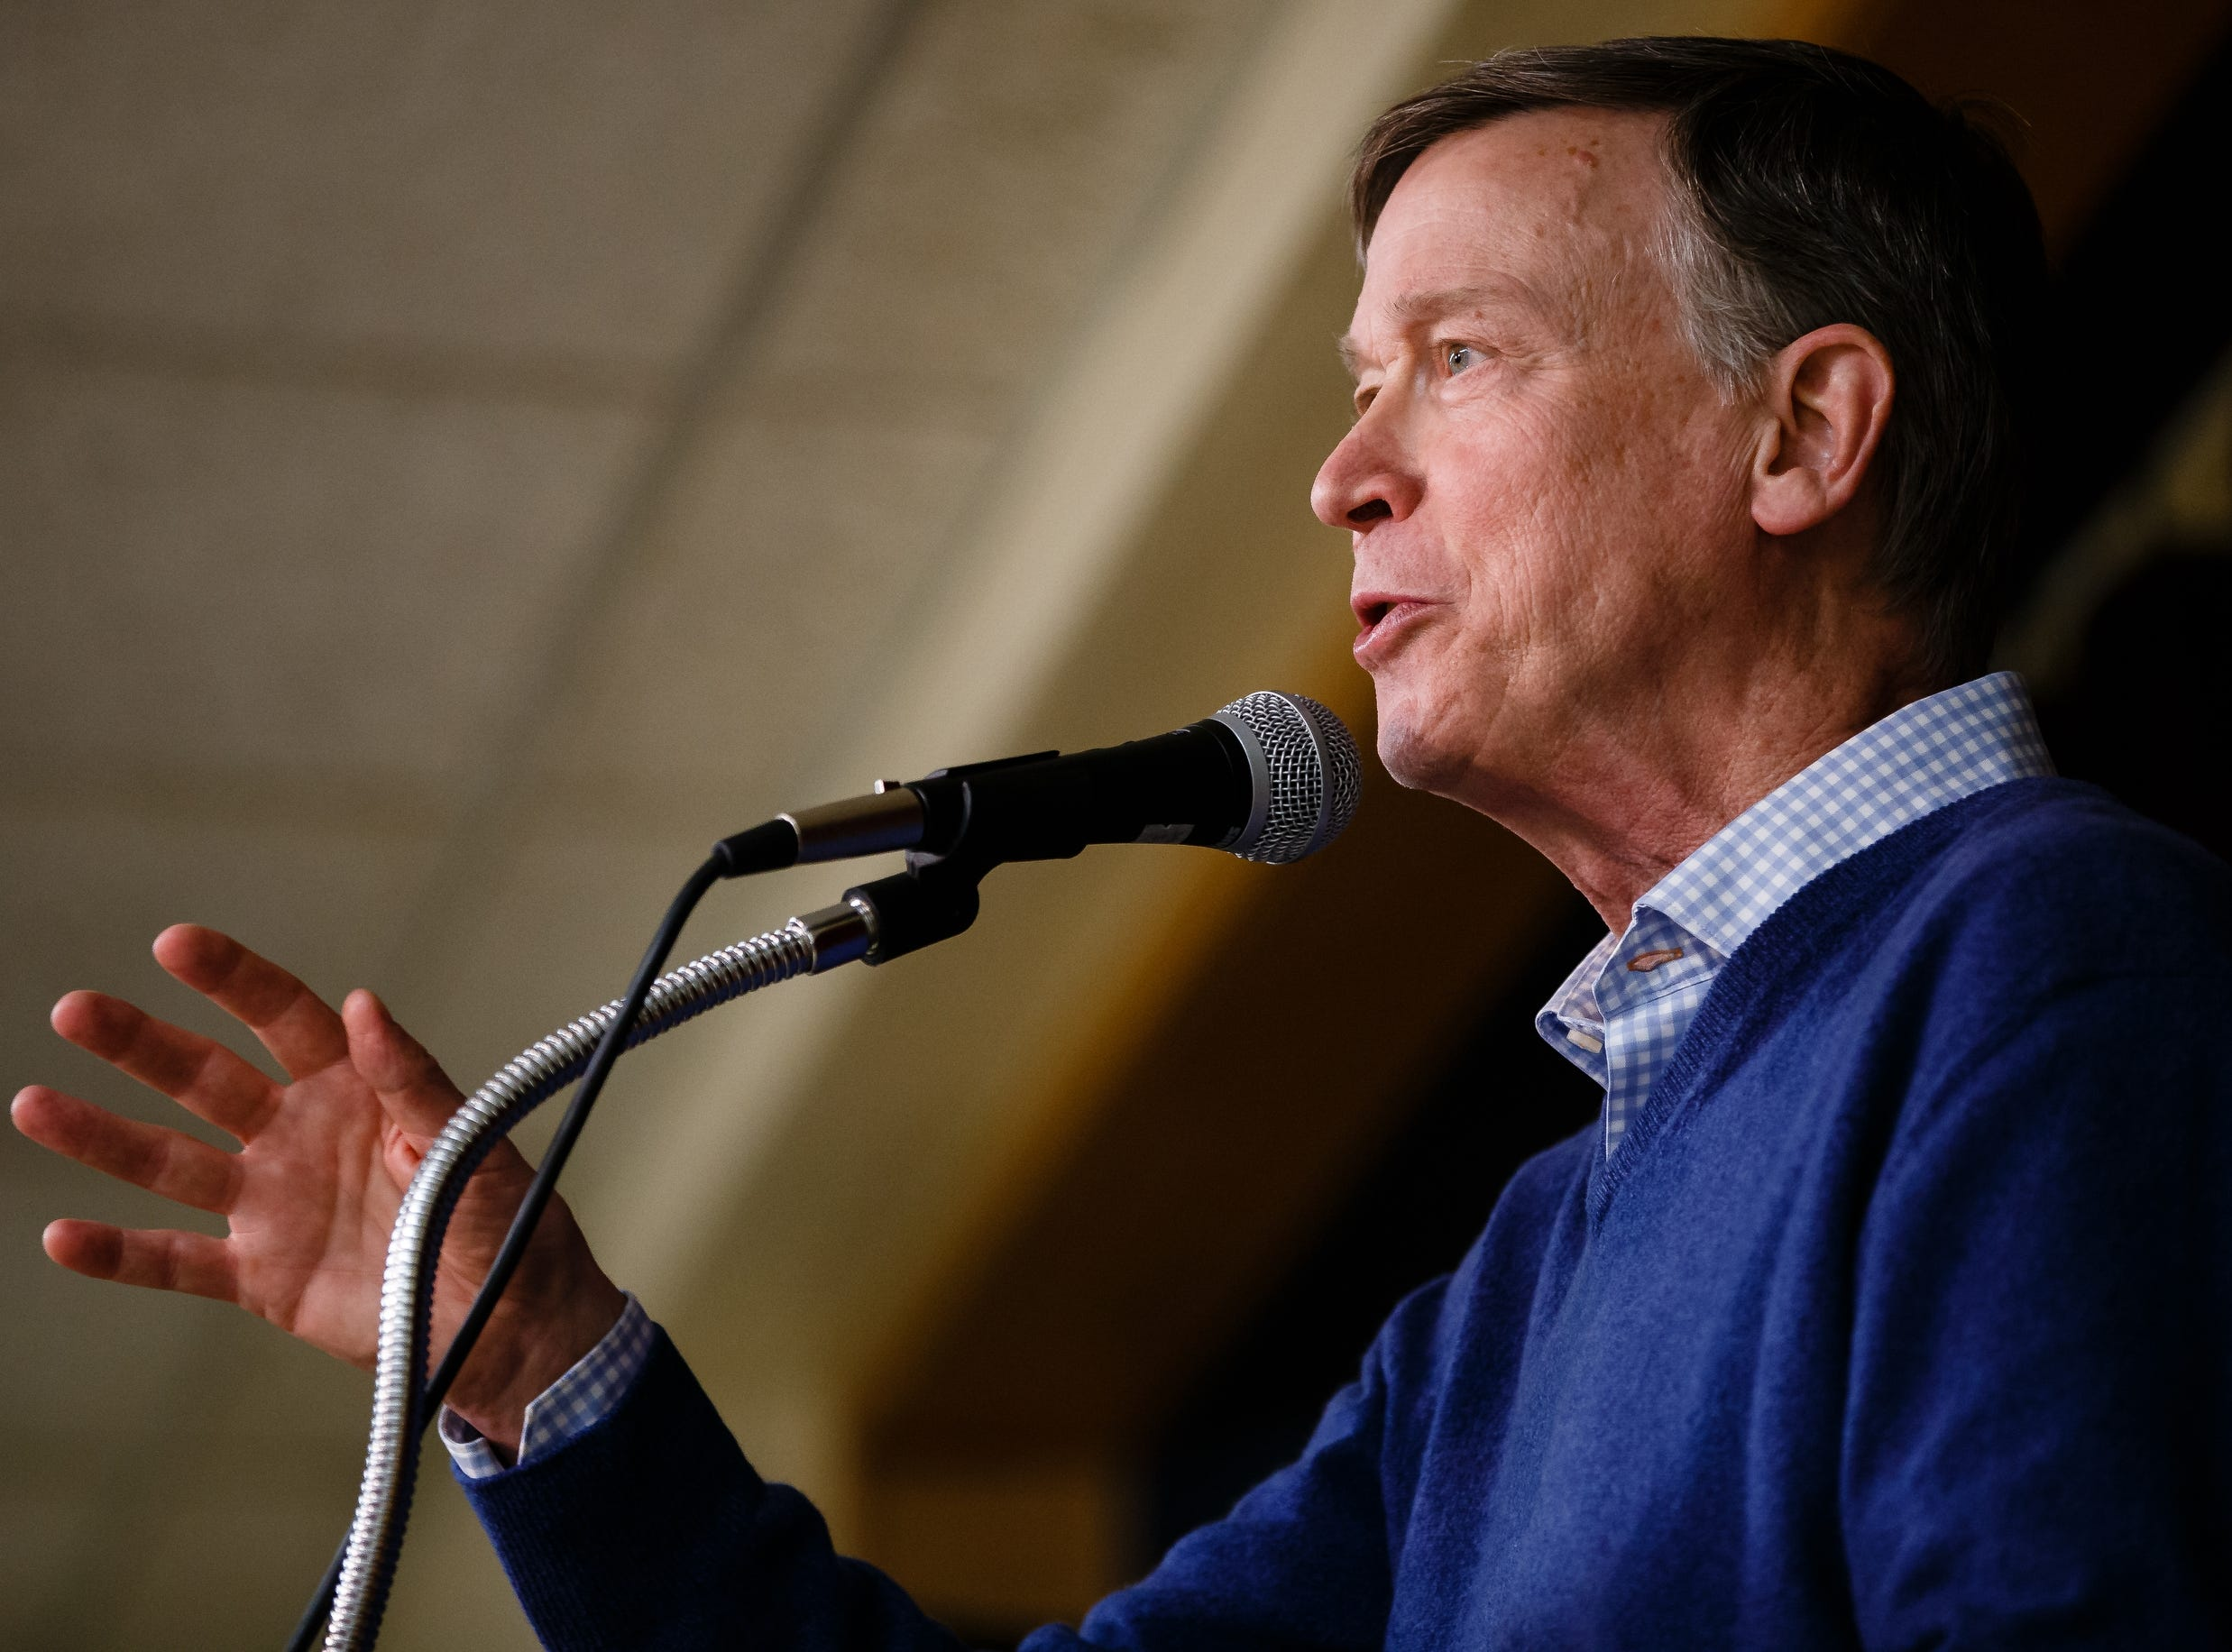 Former Governor of Colorado John Hickenlooper speaks during the Story County Democrats: Annual Soup Supper Fundraiser on Saturday, Feb. 23, 2019 in Ames.